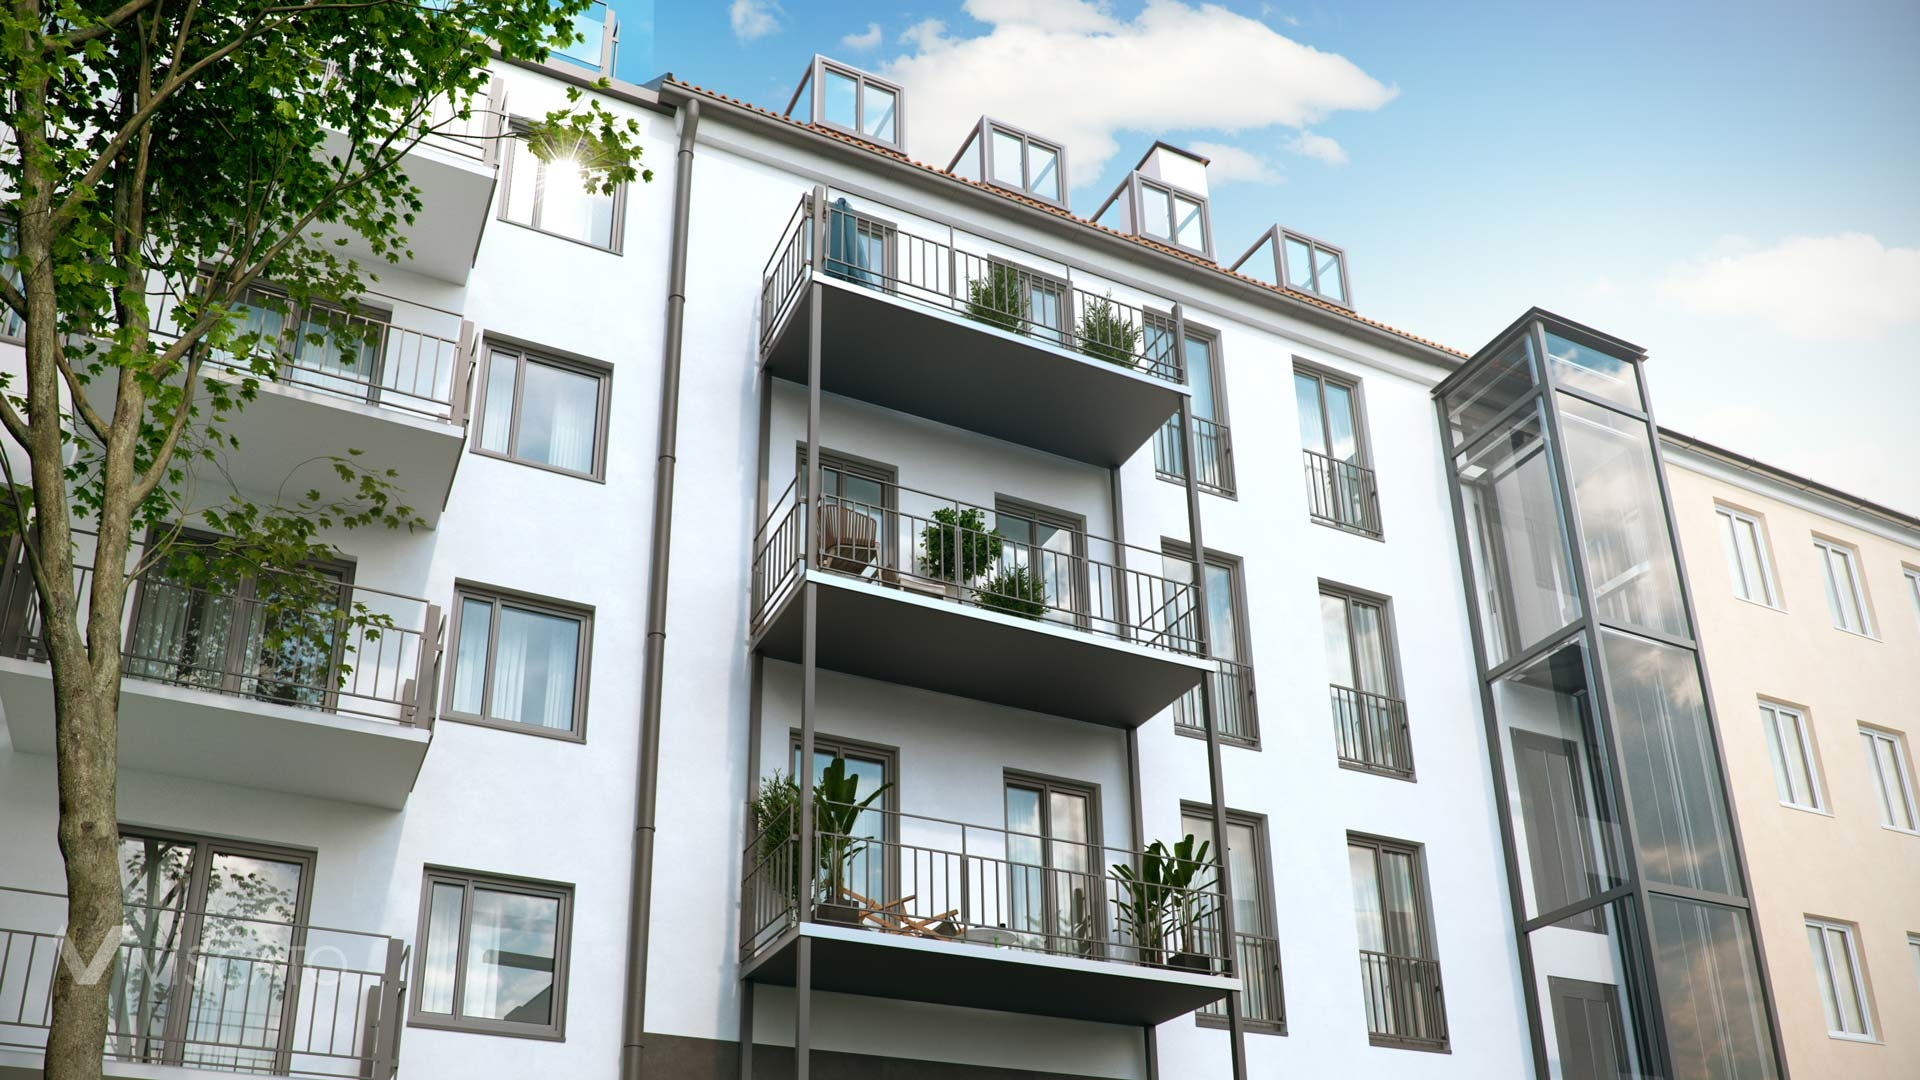 3d rendering of a residential building in Munich- balconies and exterior elevator